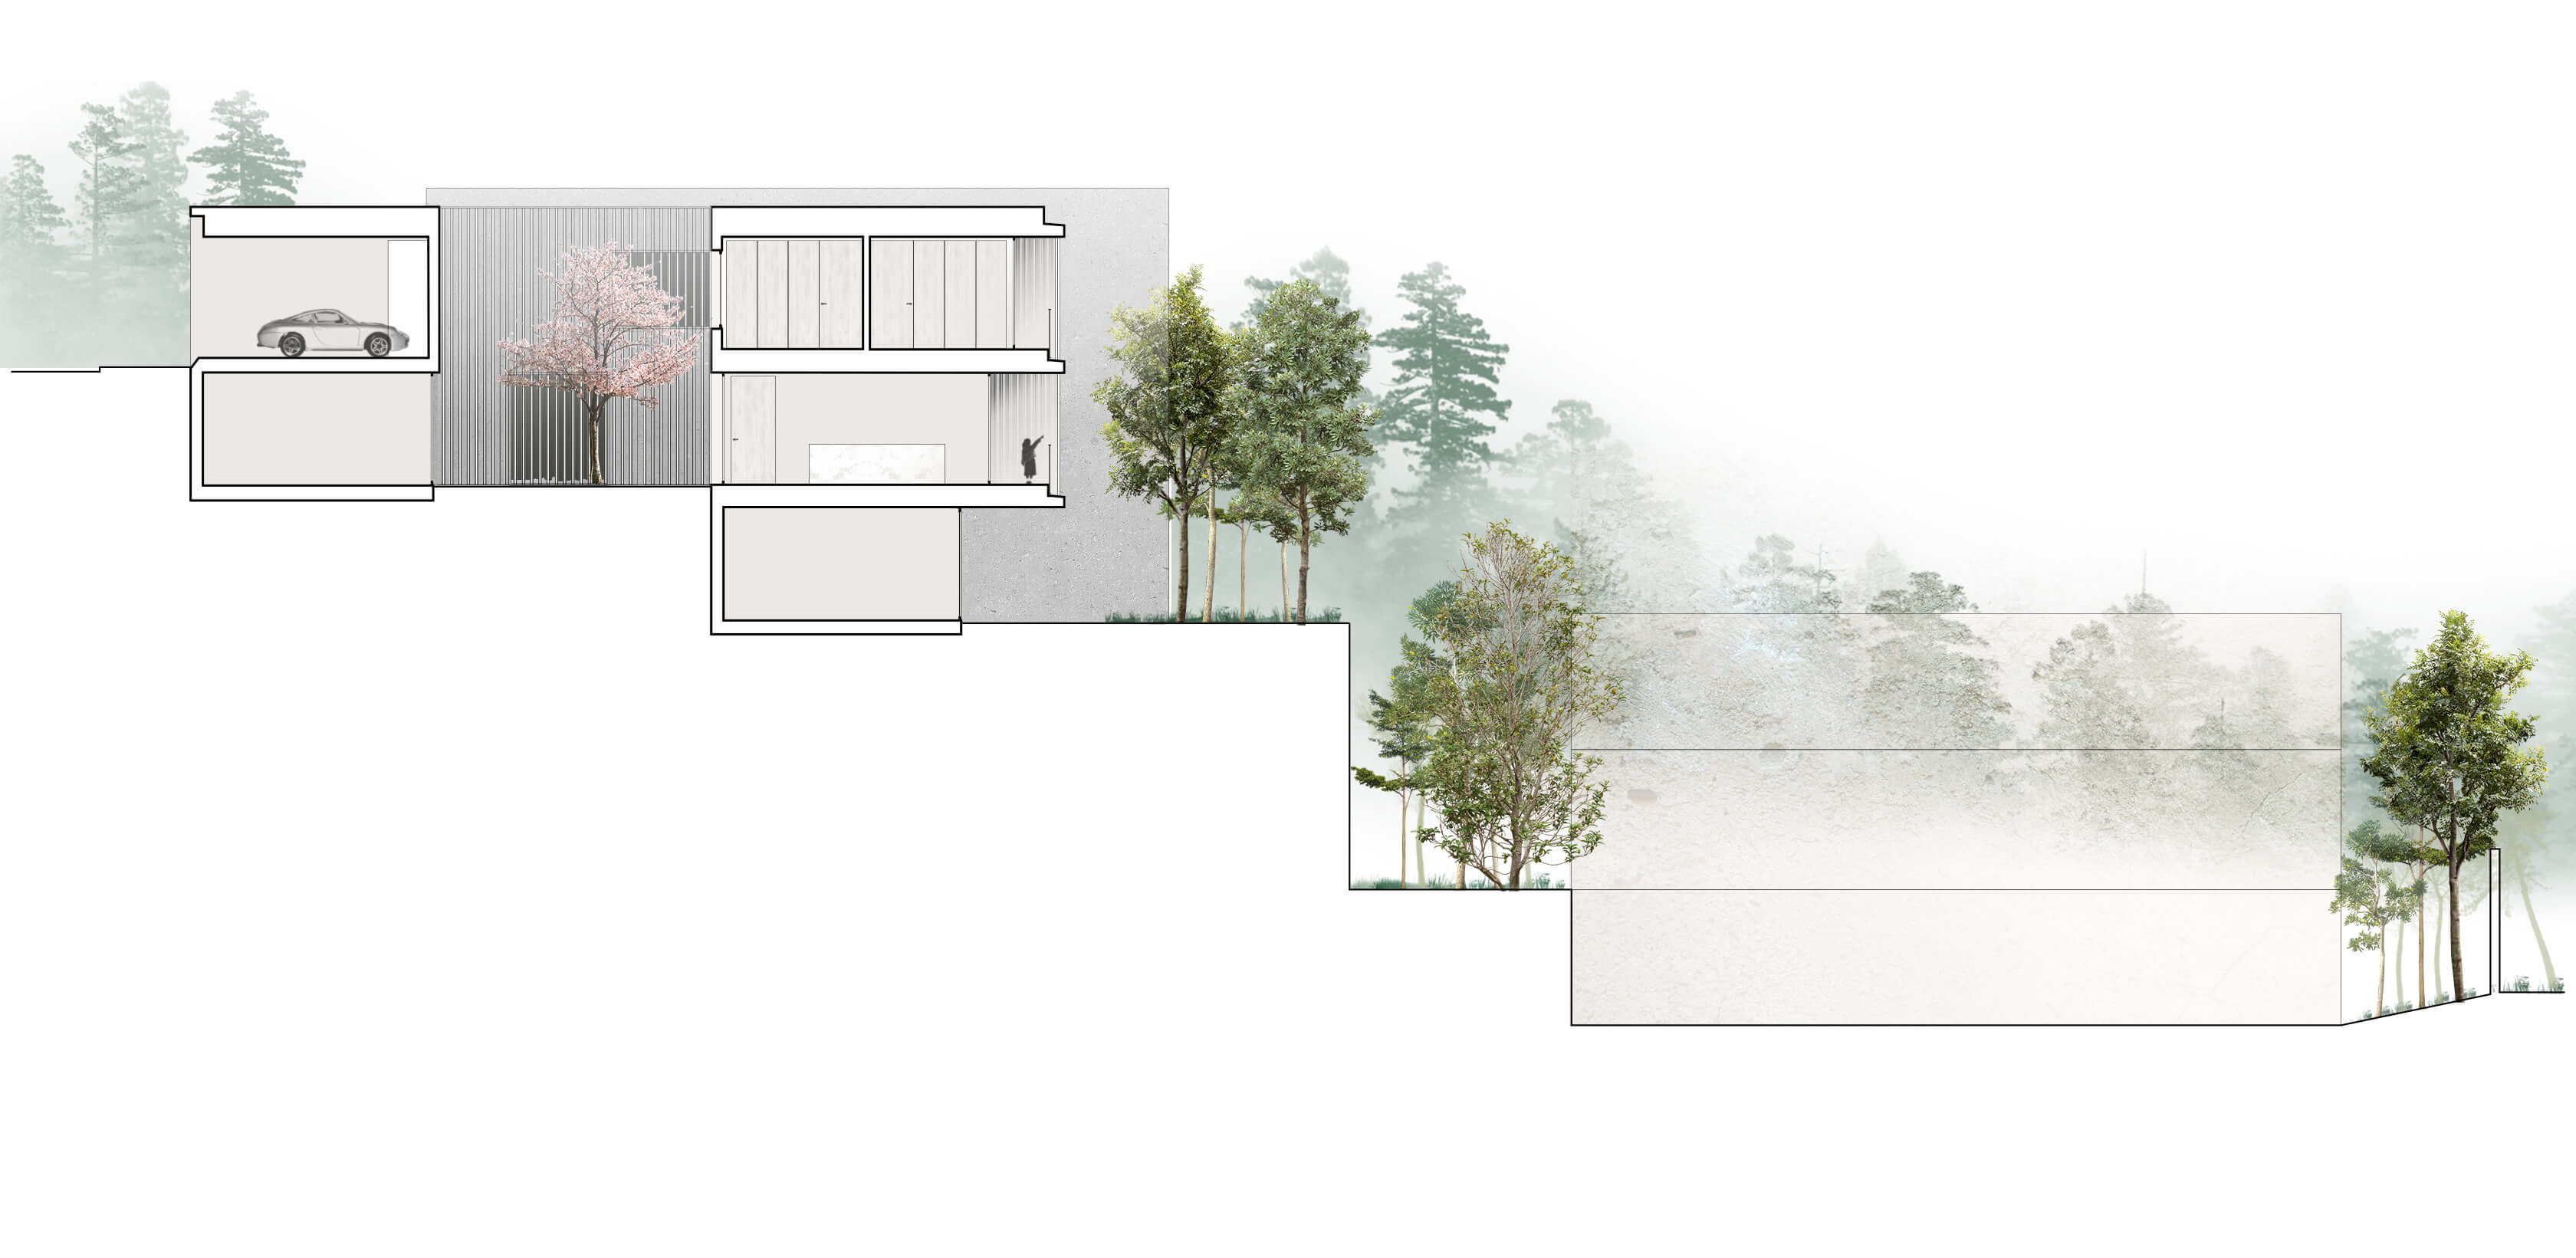 /Volumes/FactsArquitectos/00_WEBSITE/36_BANDA_g/36_GERAL.dwg